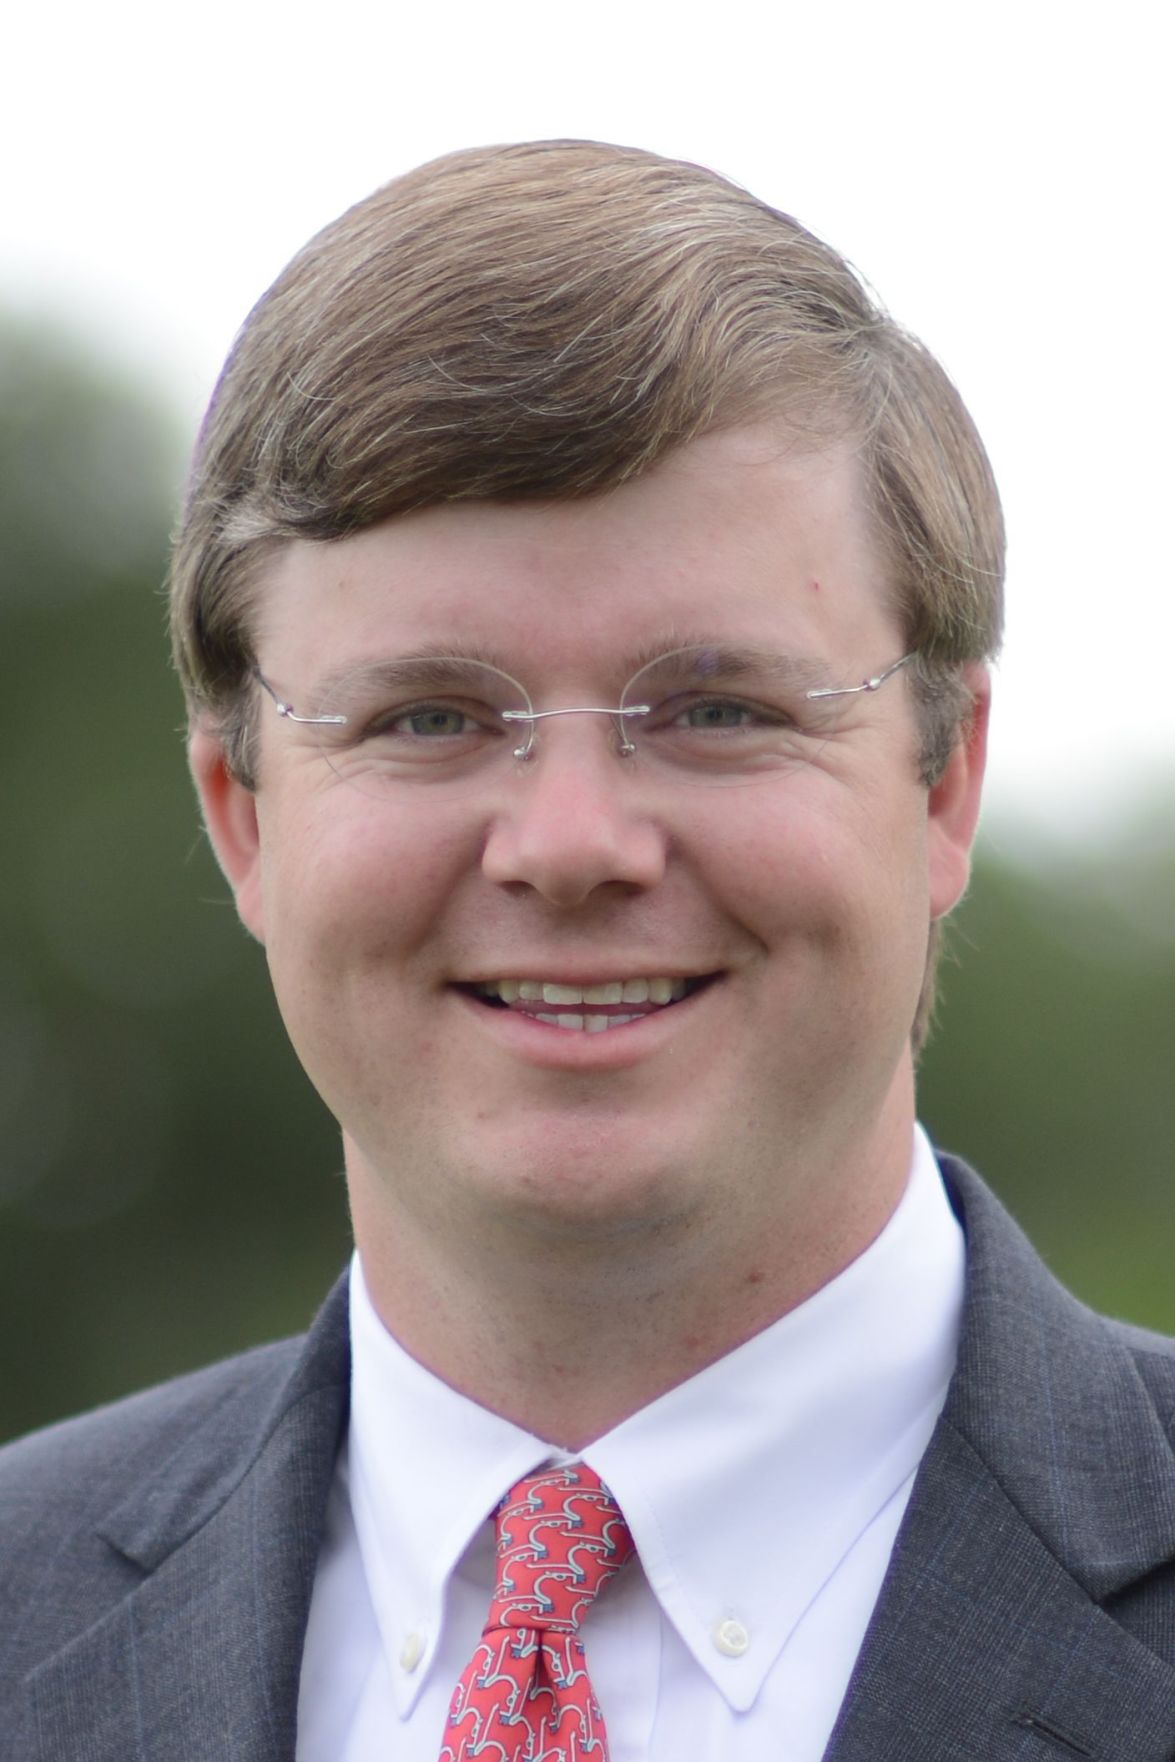 Whitley only candidate for Berkeley council seat